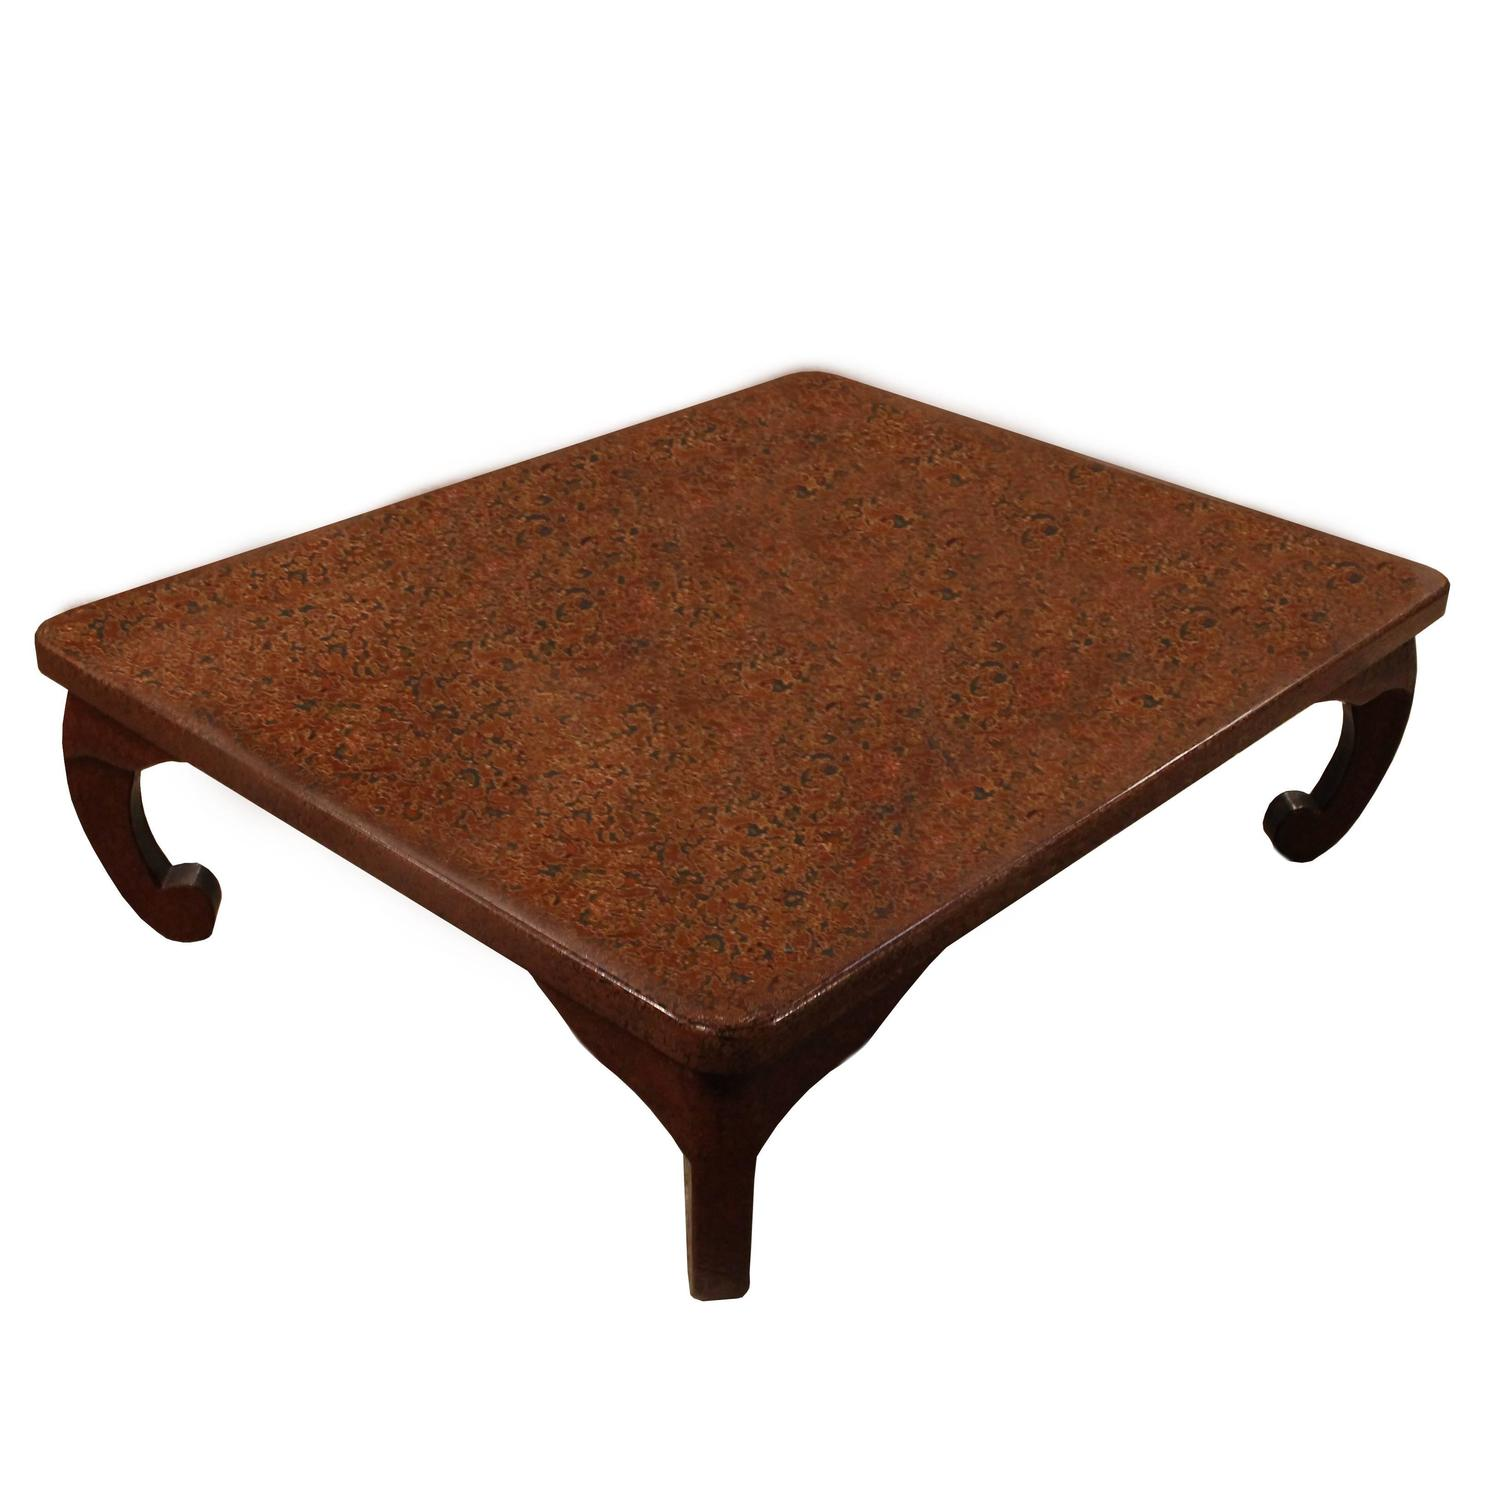 Japanese Wakasa Persimmon Lacquer Square Low Table